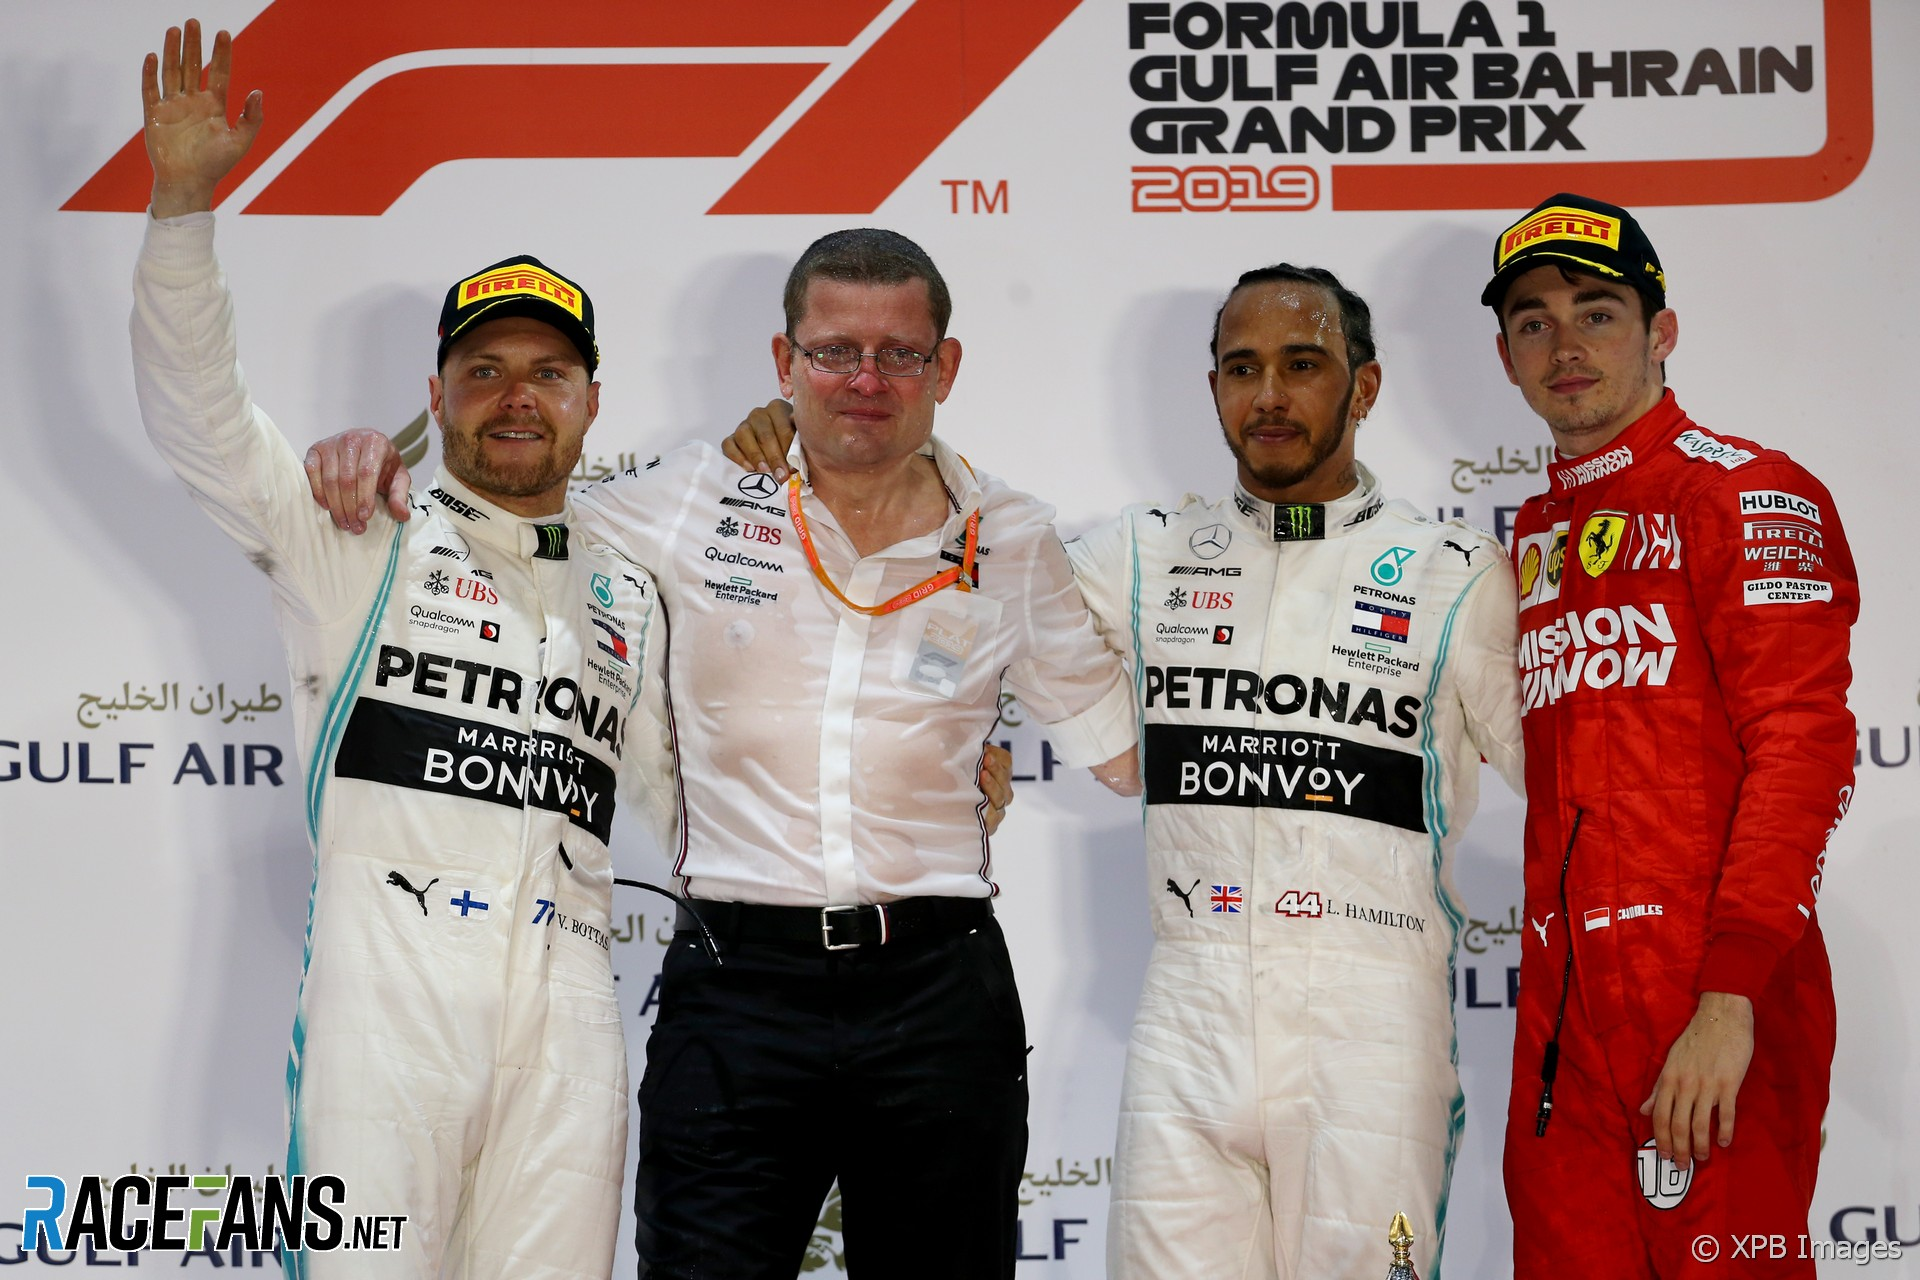 Charlie Whiting Wallpaper: Wallpapers Bahrain Grand Prix Of 2019